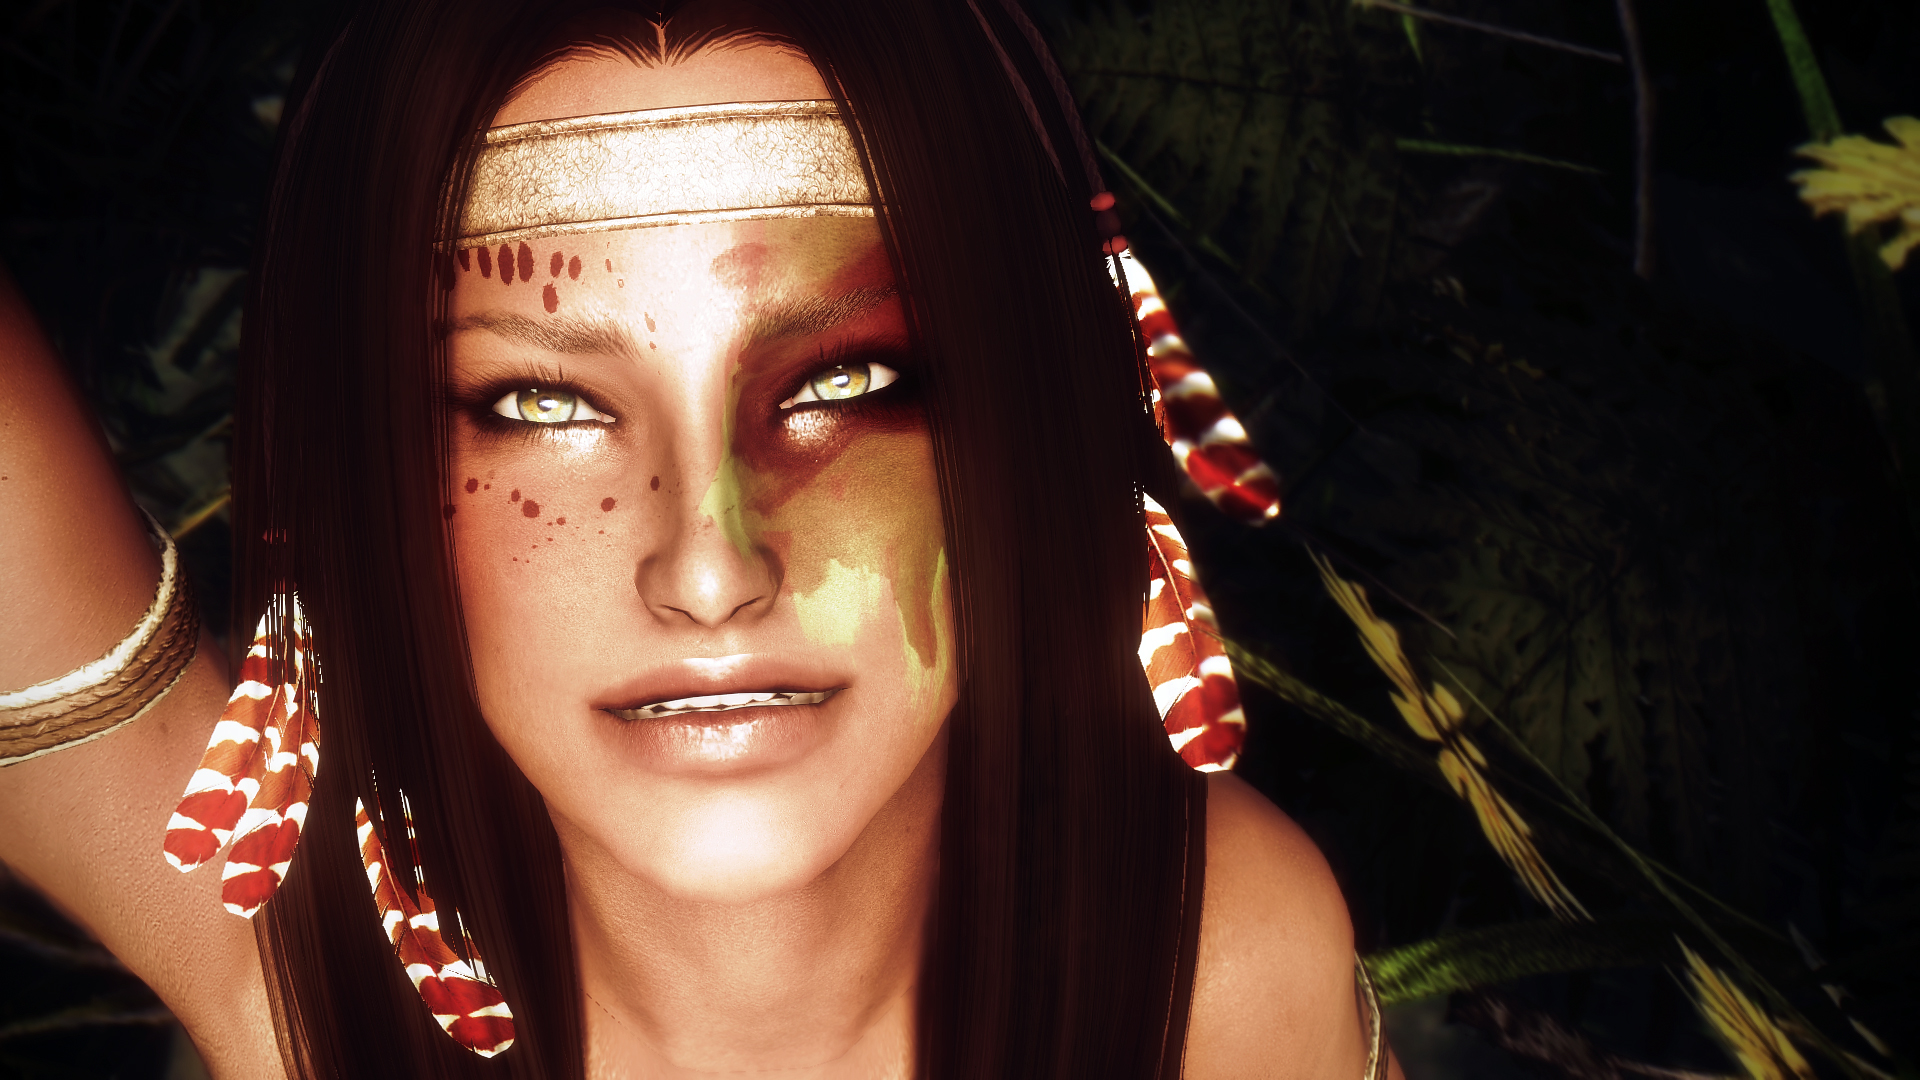 Warpaints VOL 2 WIP by SkyrimKnight2013 - Hippie Girl Edition